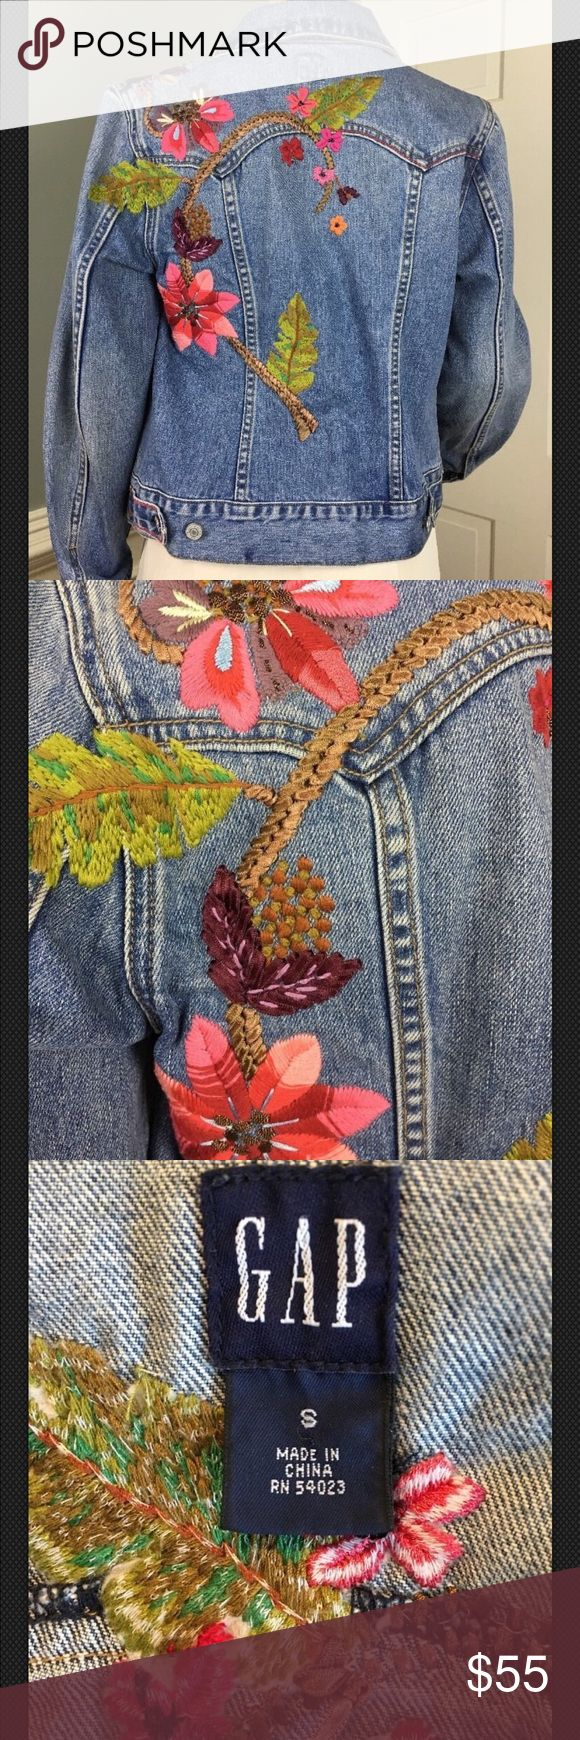 Floral Gap Embroidered Hippie Denim Jean Jacket Sm Excellent condition vintage gap jacket. All Embellishments are in place bright and beautiful GAP Jackets & Coats Jean Jackets